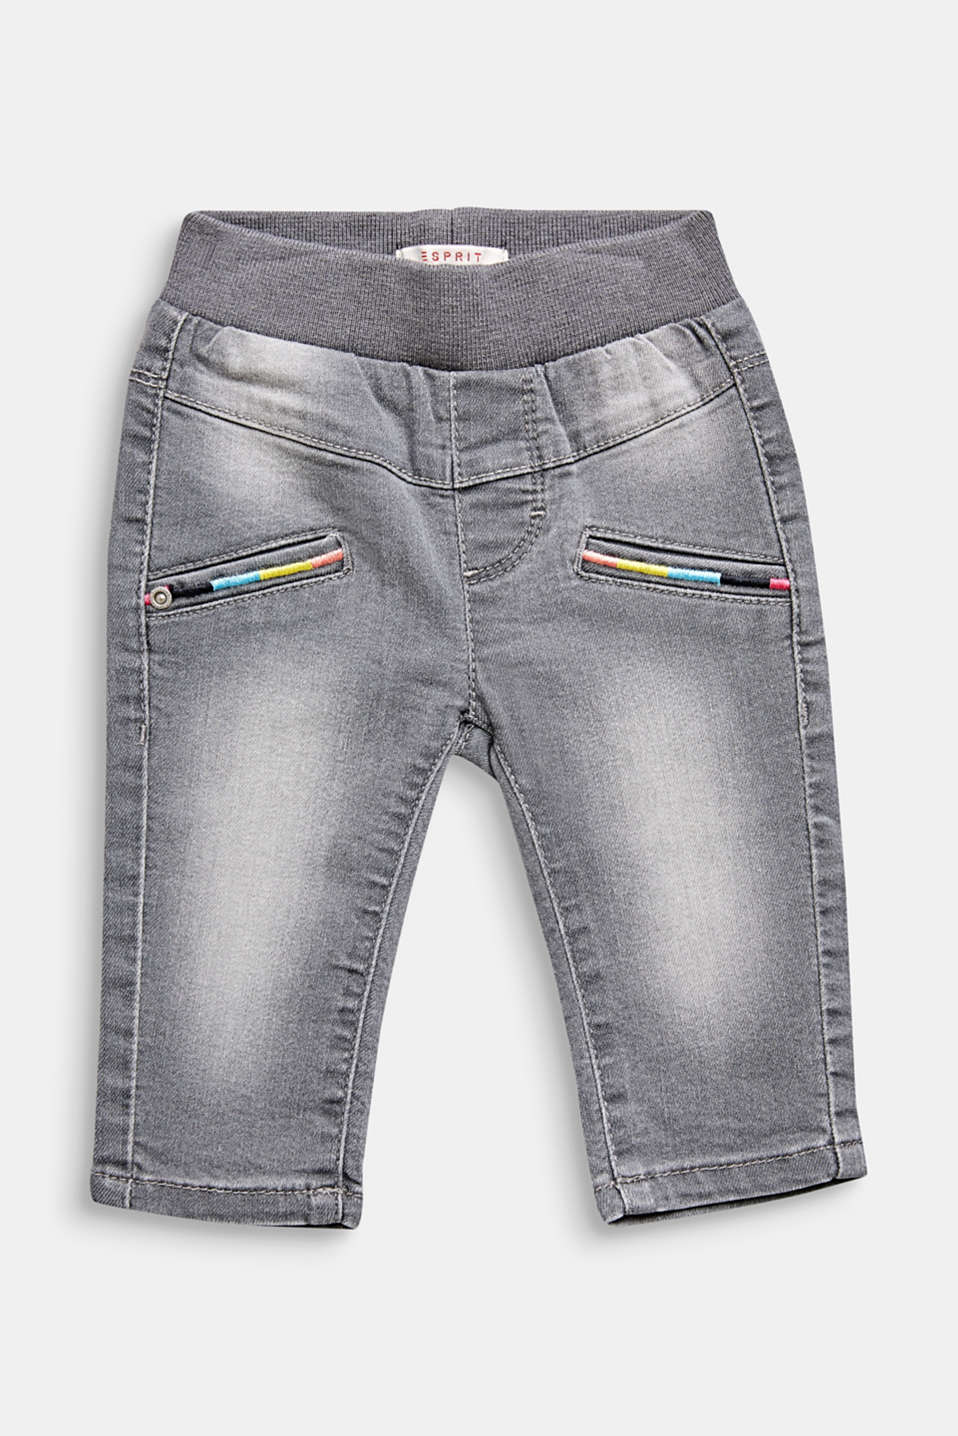 Esprit - Stretch jeans with colourful embroidery